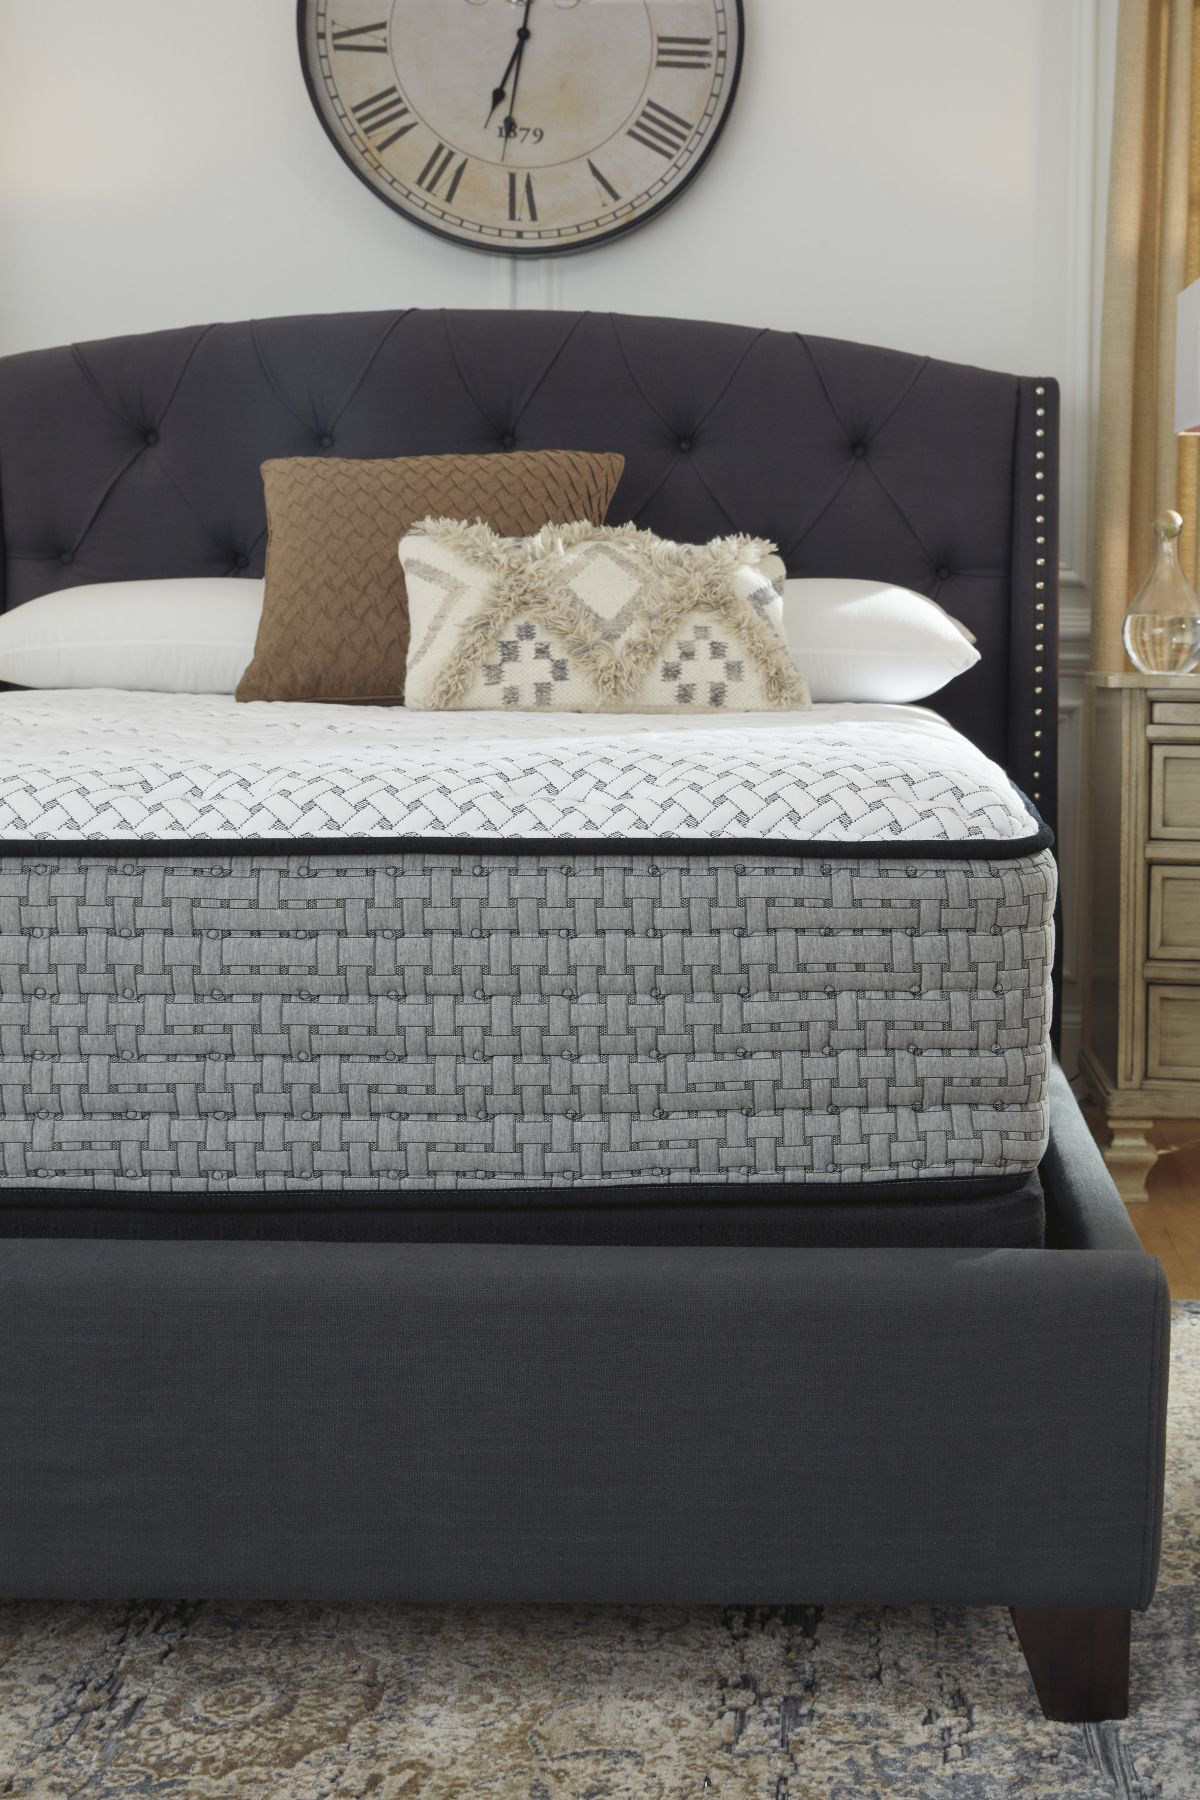 Picture of Santa Fe Firm King Mattress